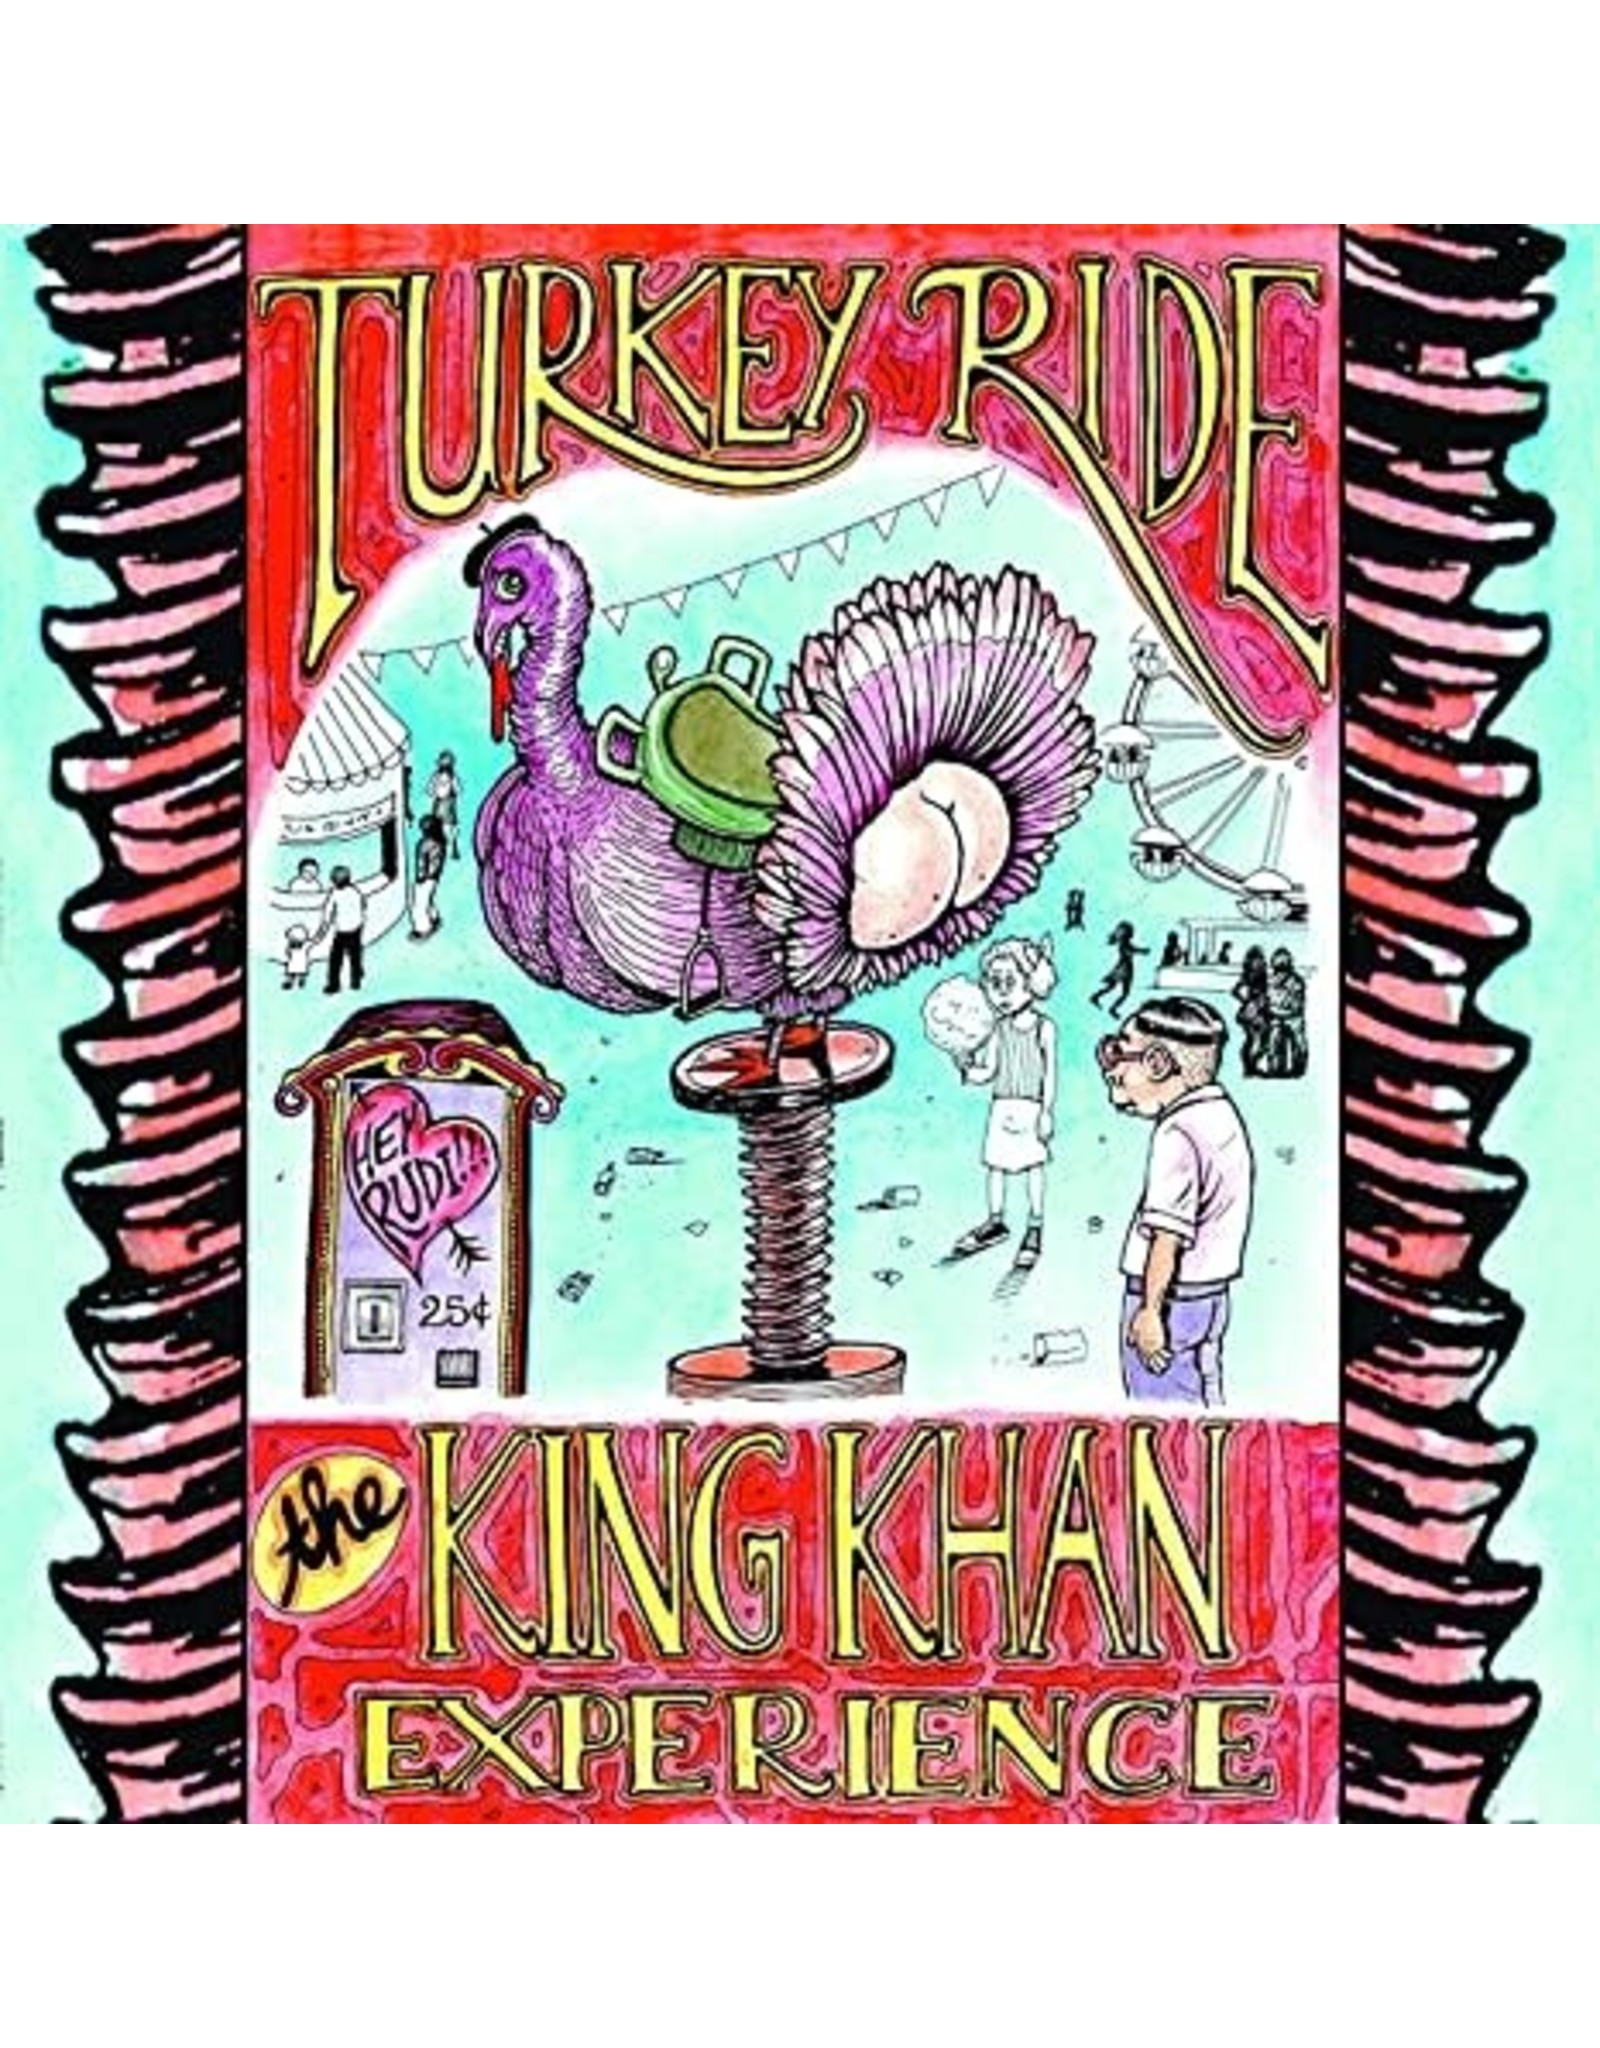 New Vinyl The King Khan Experience - Turkey Ride LP